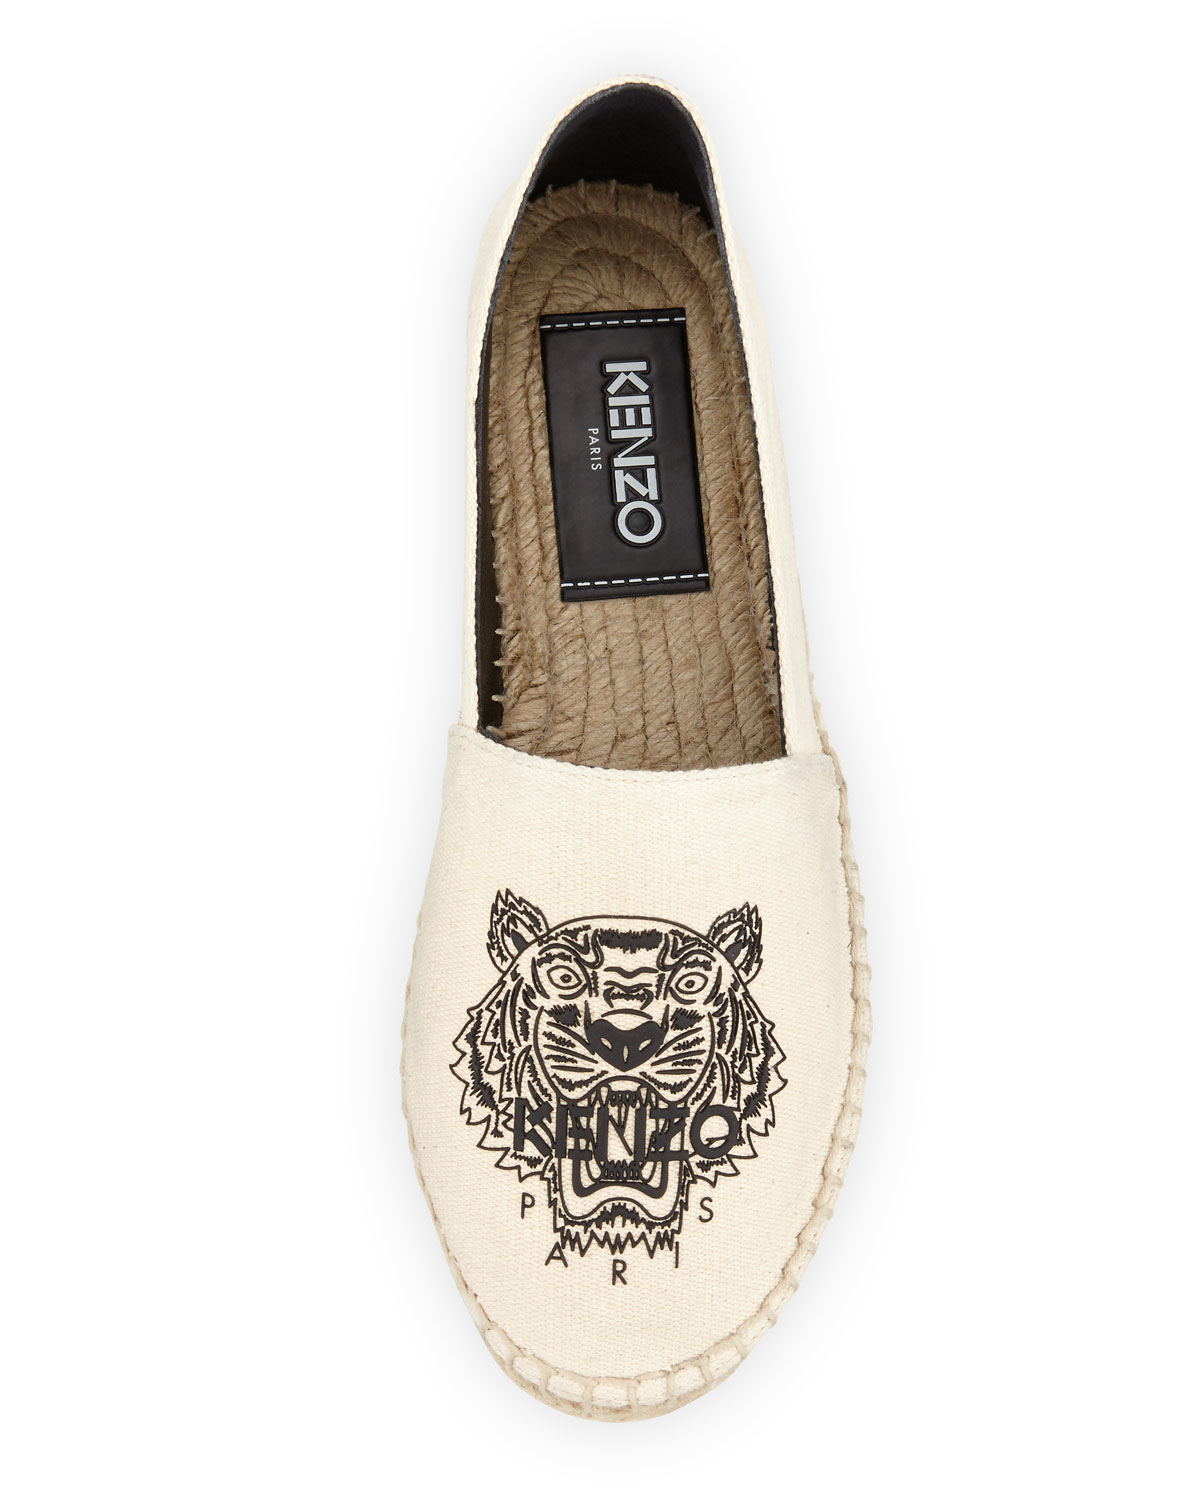 Outlet With Paypal Order Kenzo Espadrilles With Tiger Embroidery Buy Cheap Hot Sale Outlet Choice Clearance Get Authentic Buy Cheap Reliable J6LhBW